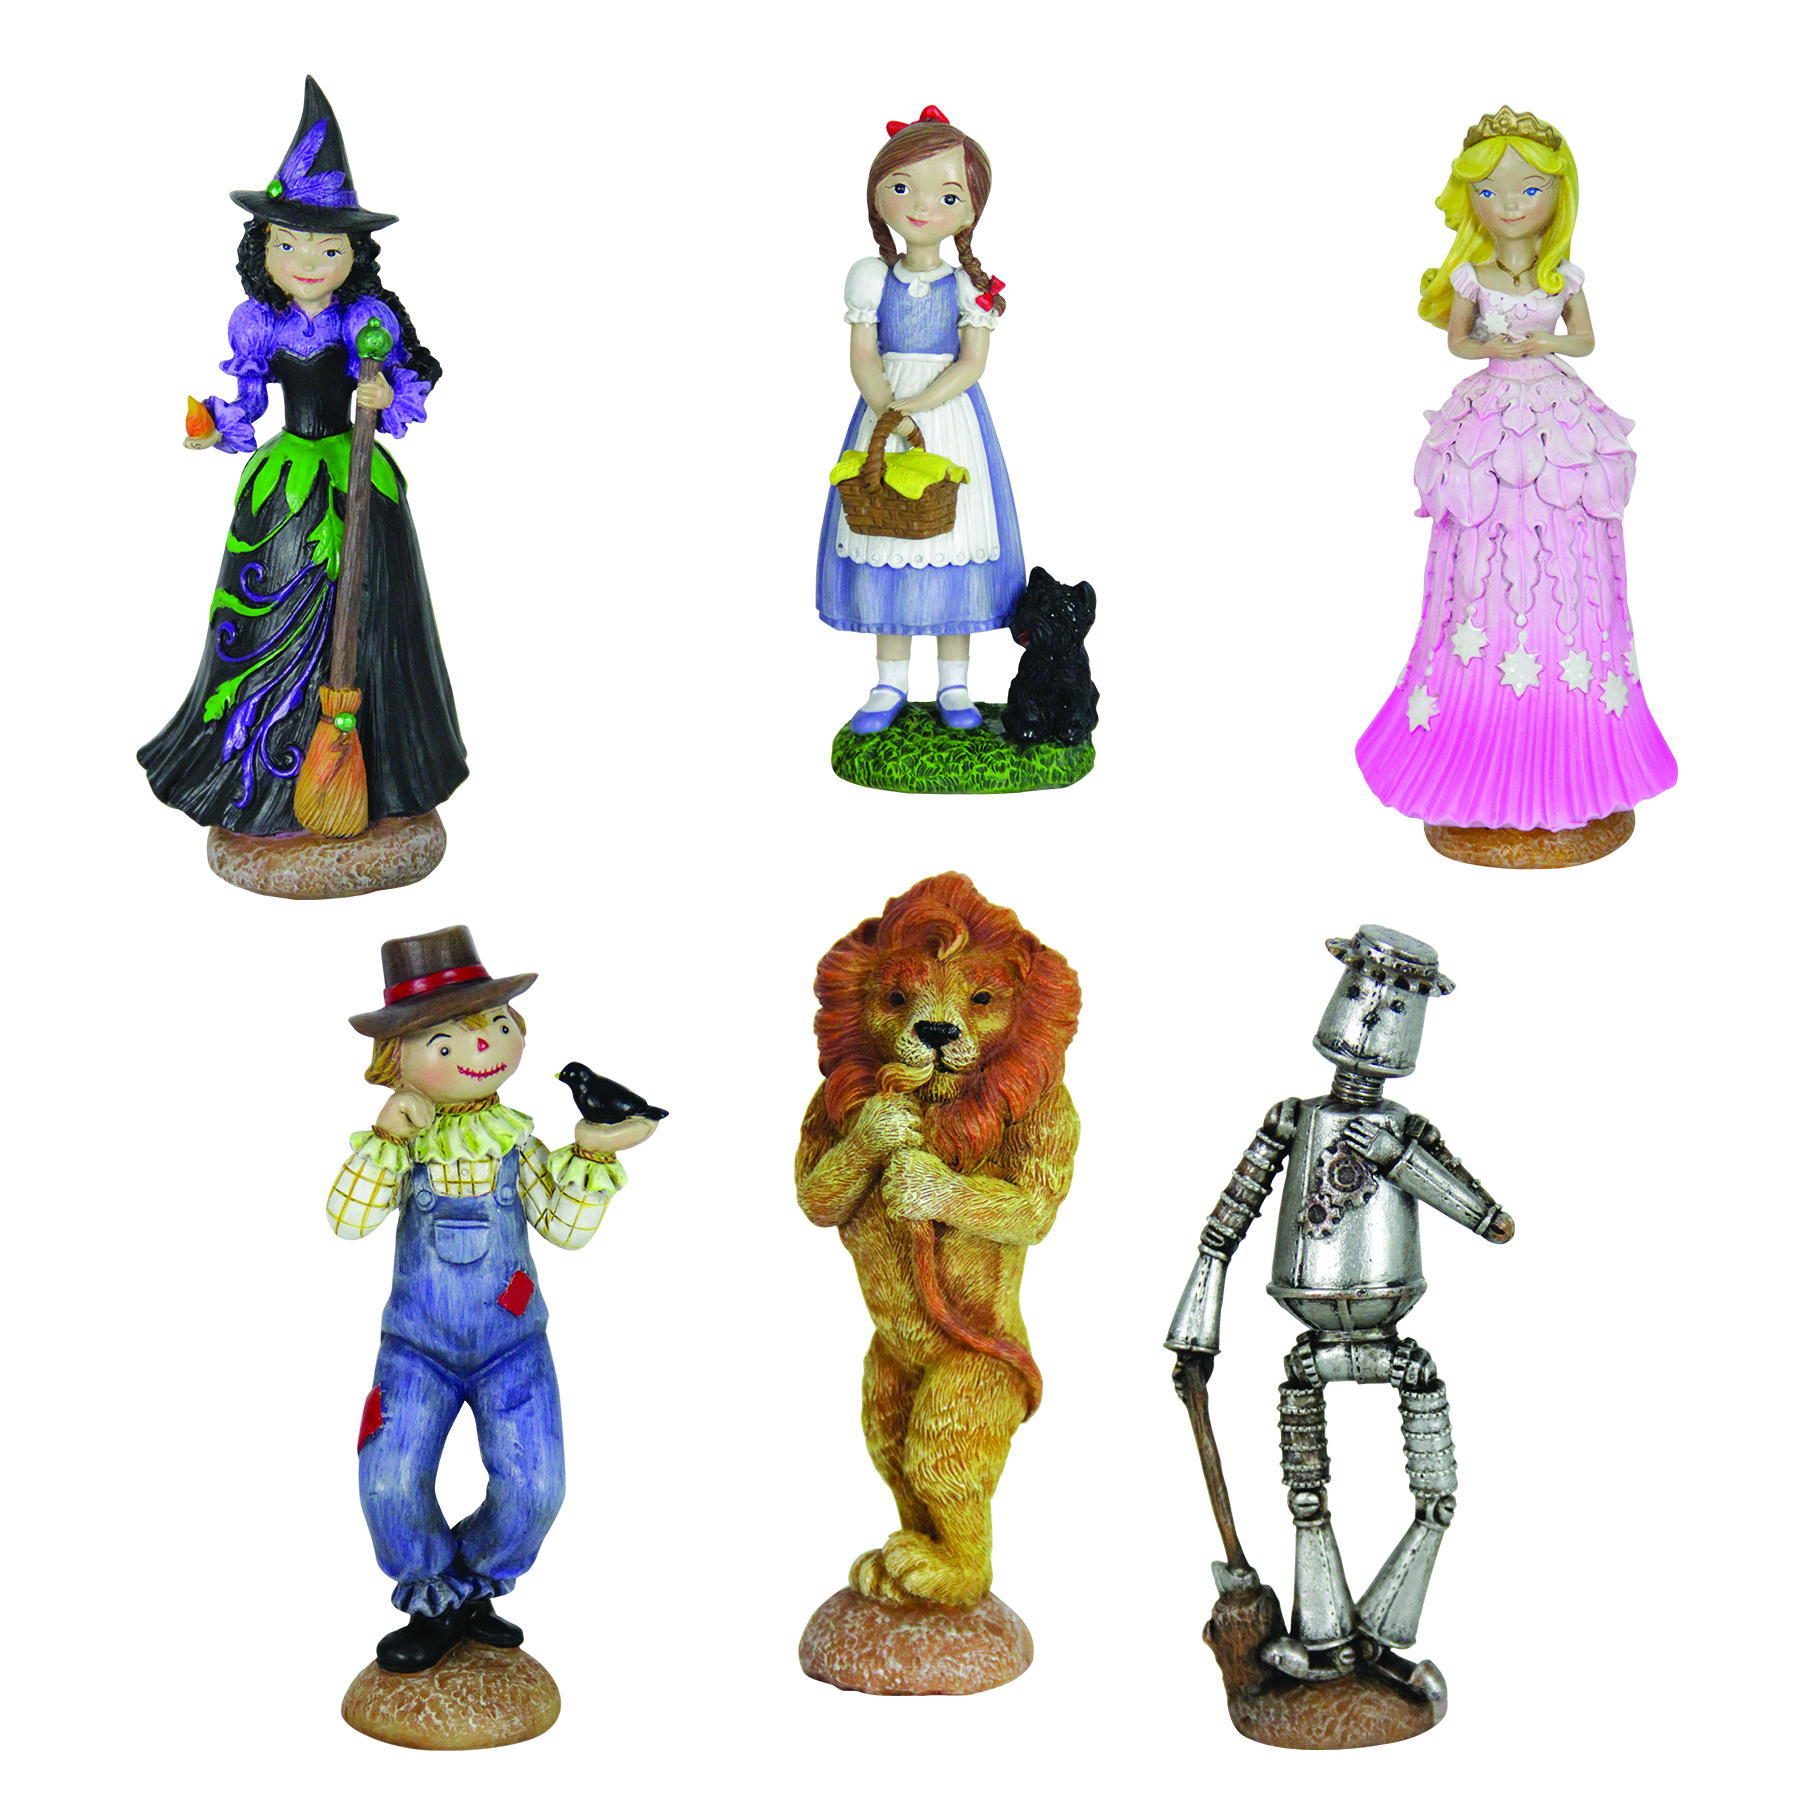 6pc Oz Land Mini Fairy Tale Garden Set